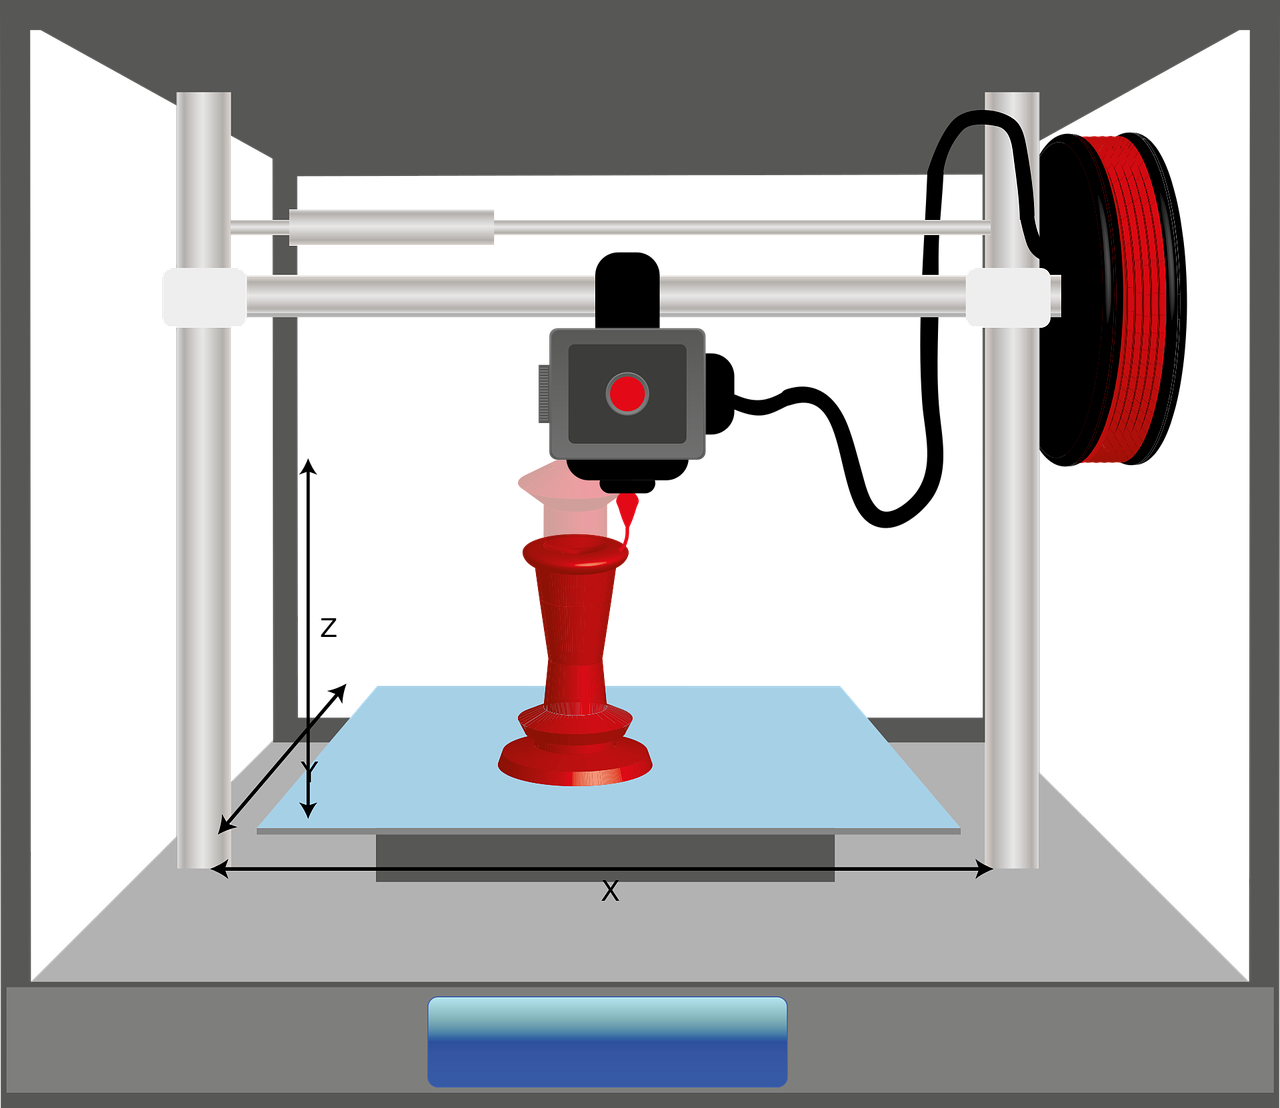 Practical Experiences With 3D Printing